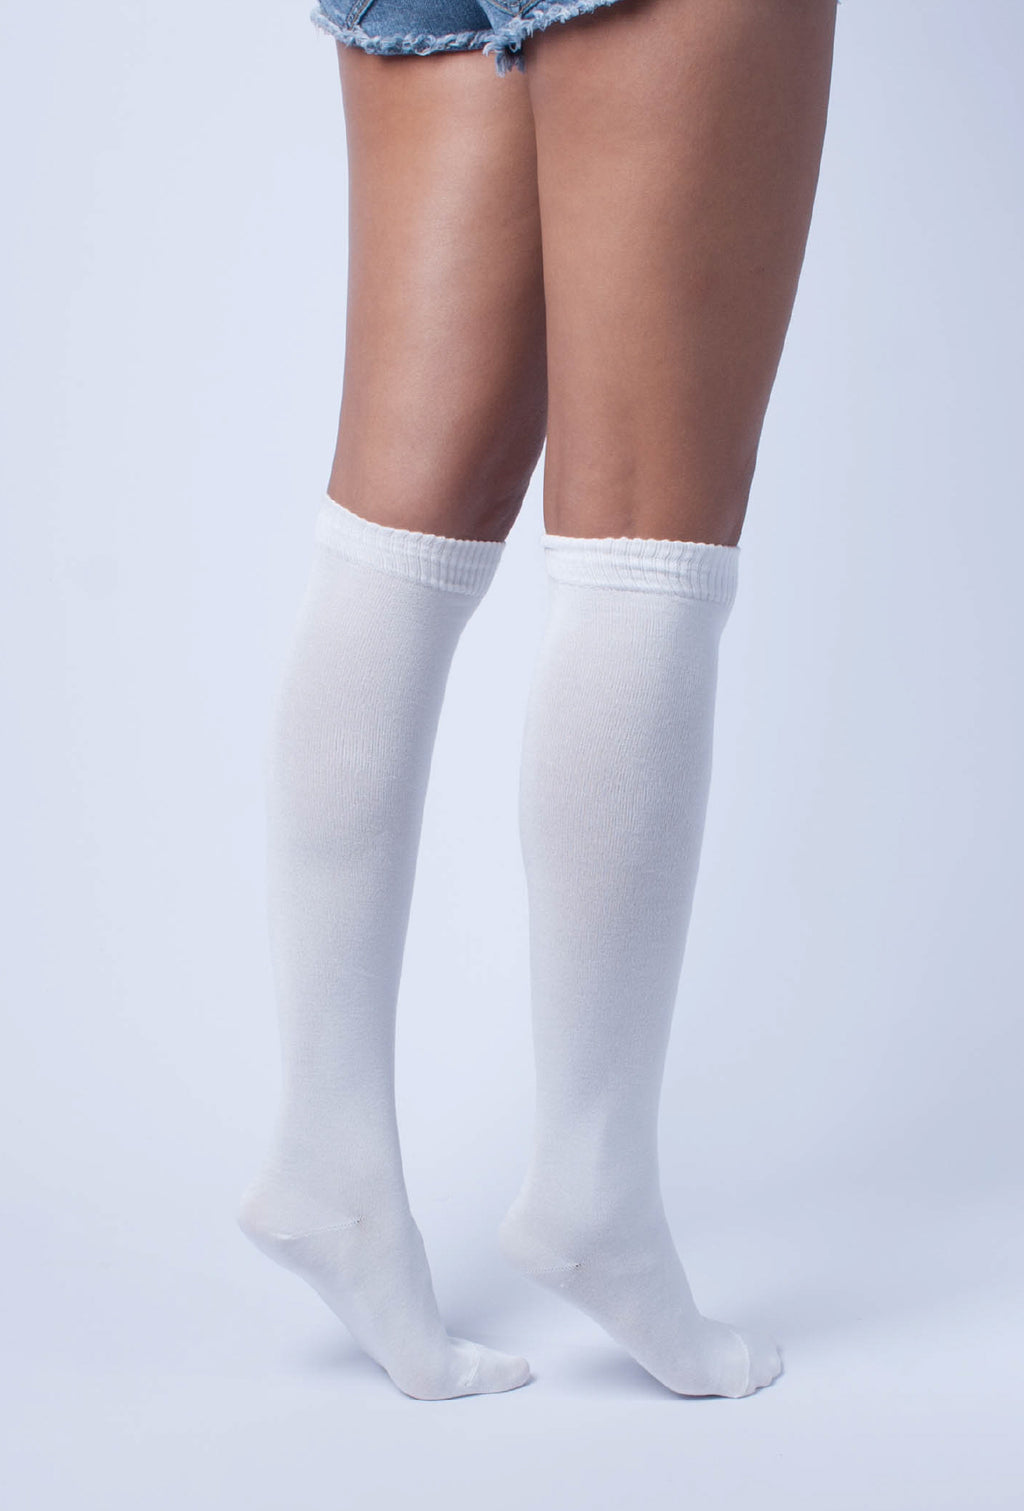 Solid White Knee High Socks